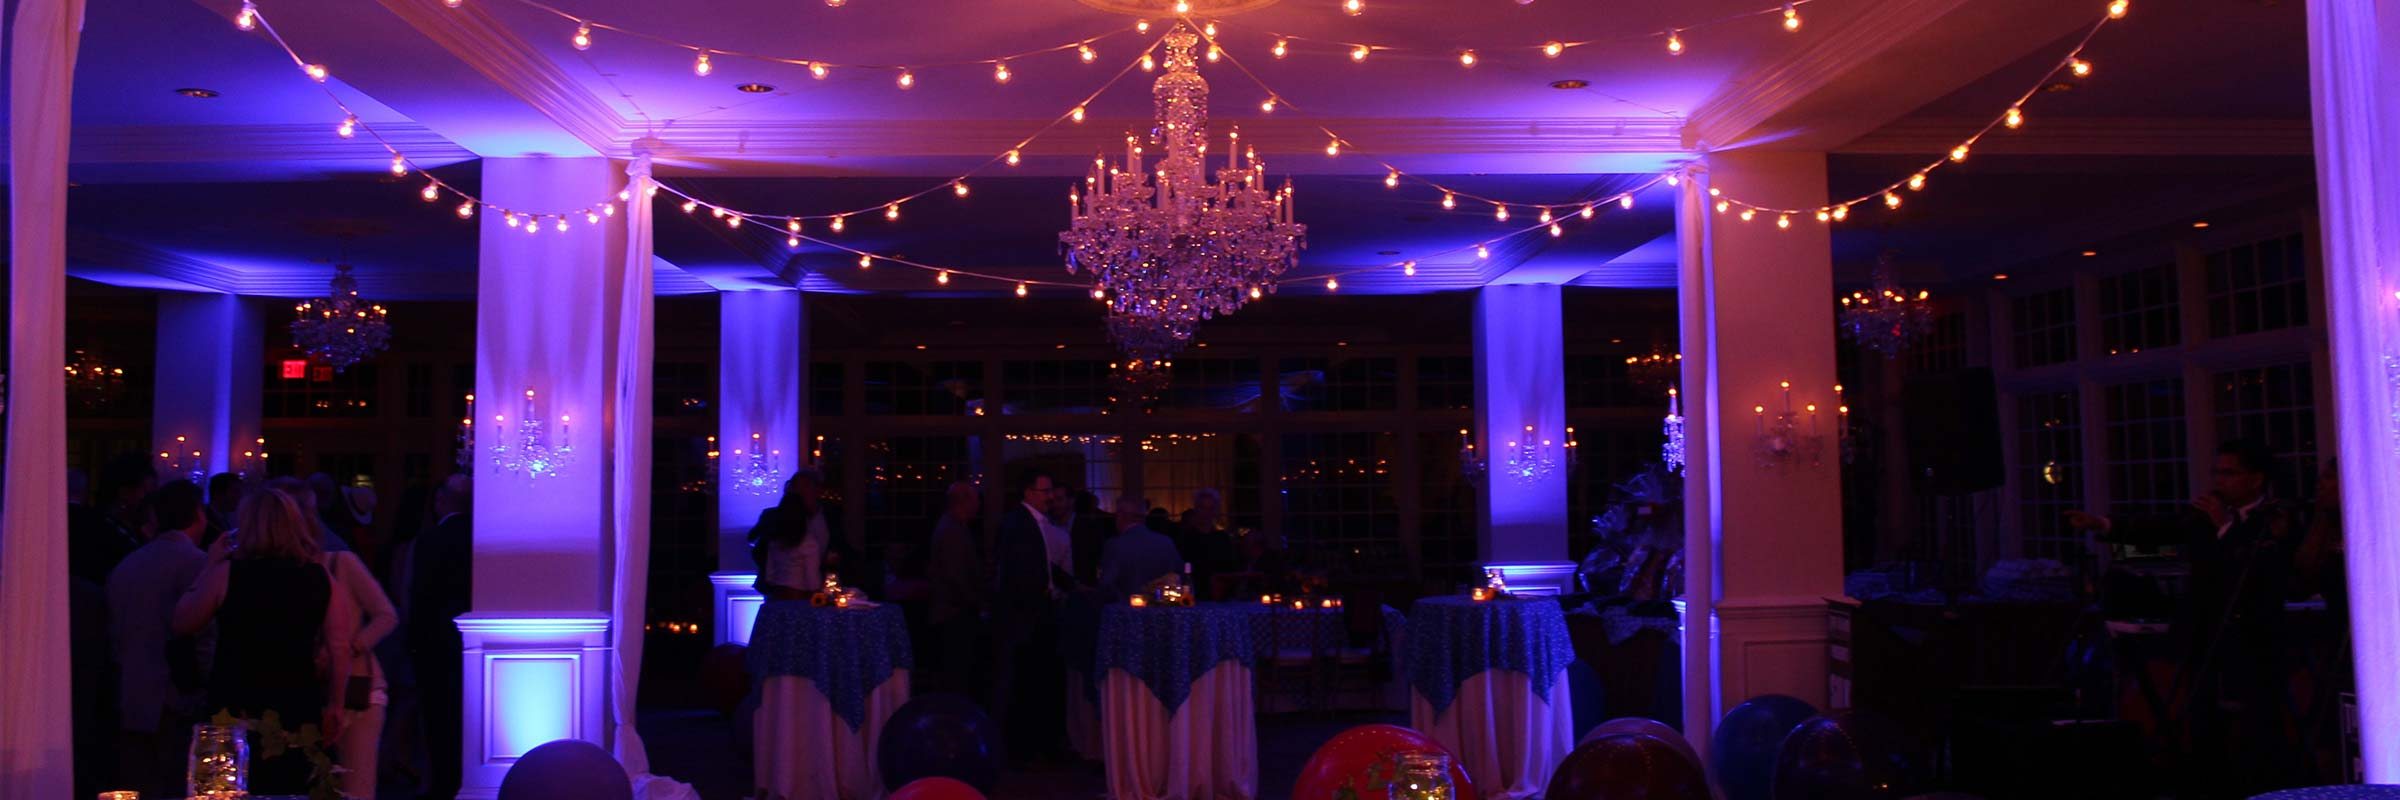 Elegant Event Decor Lighting